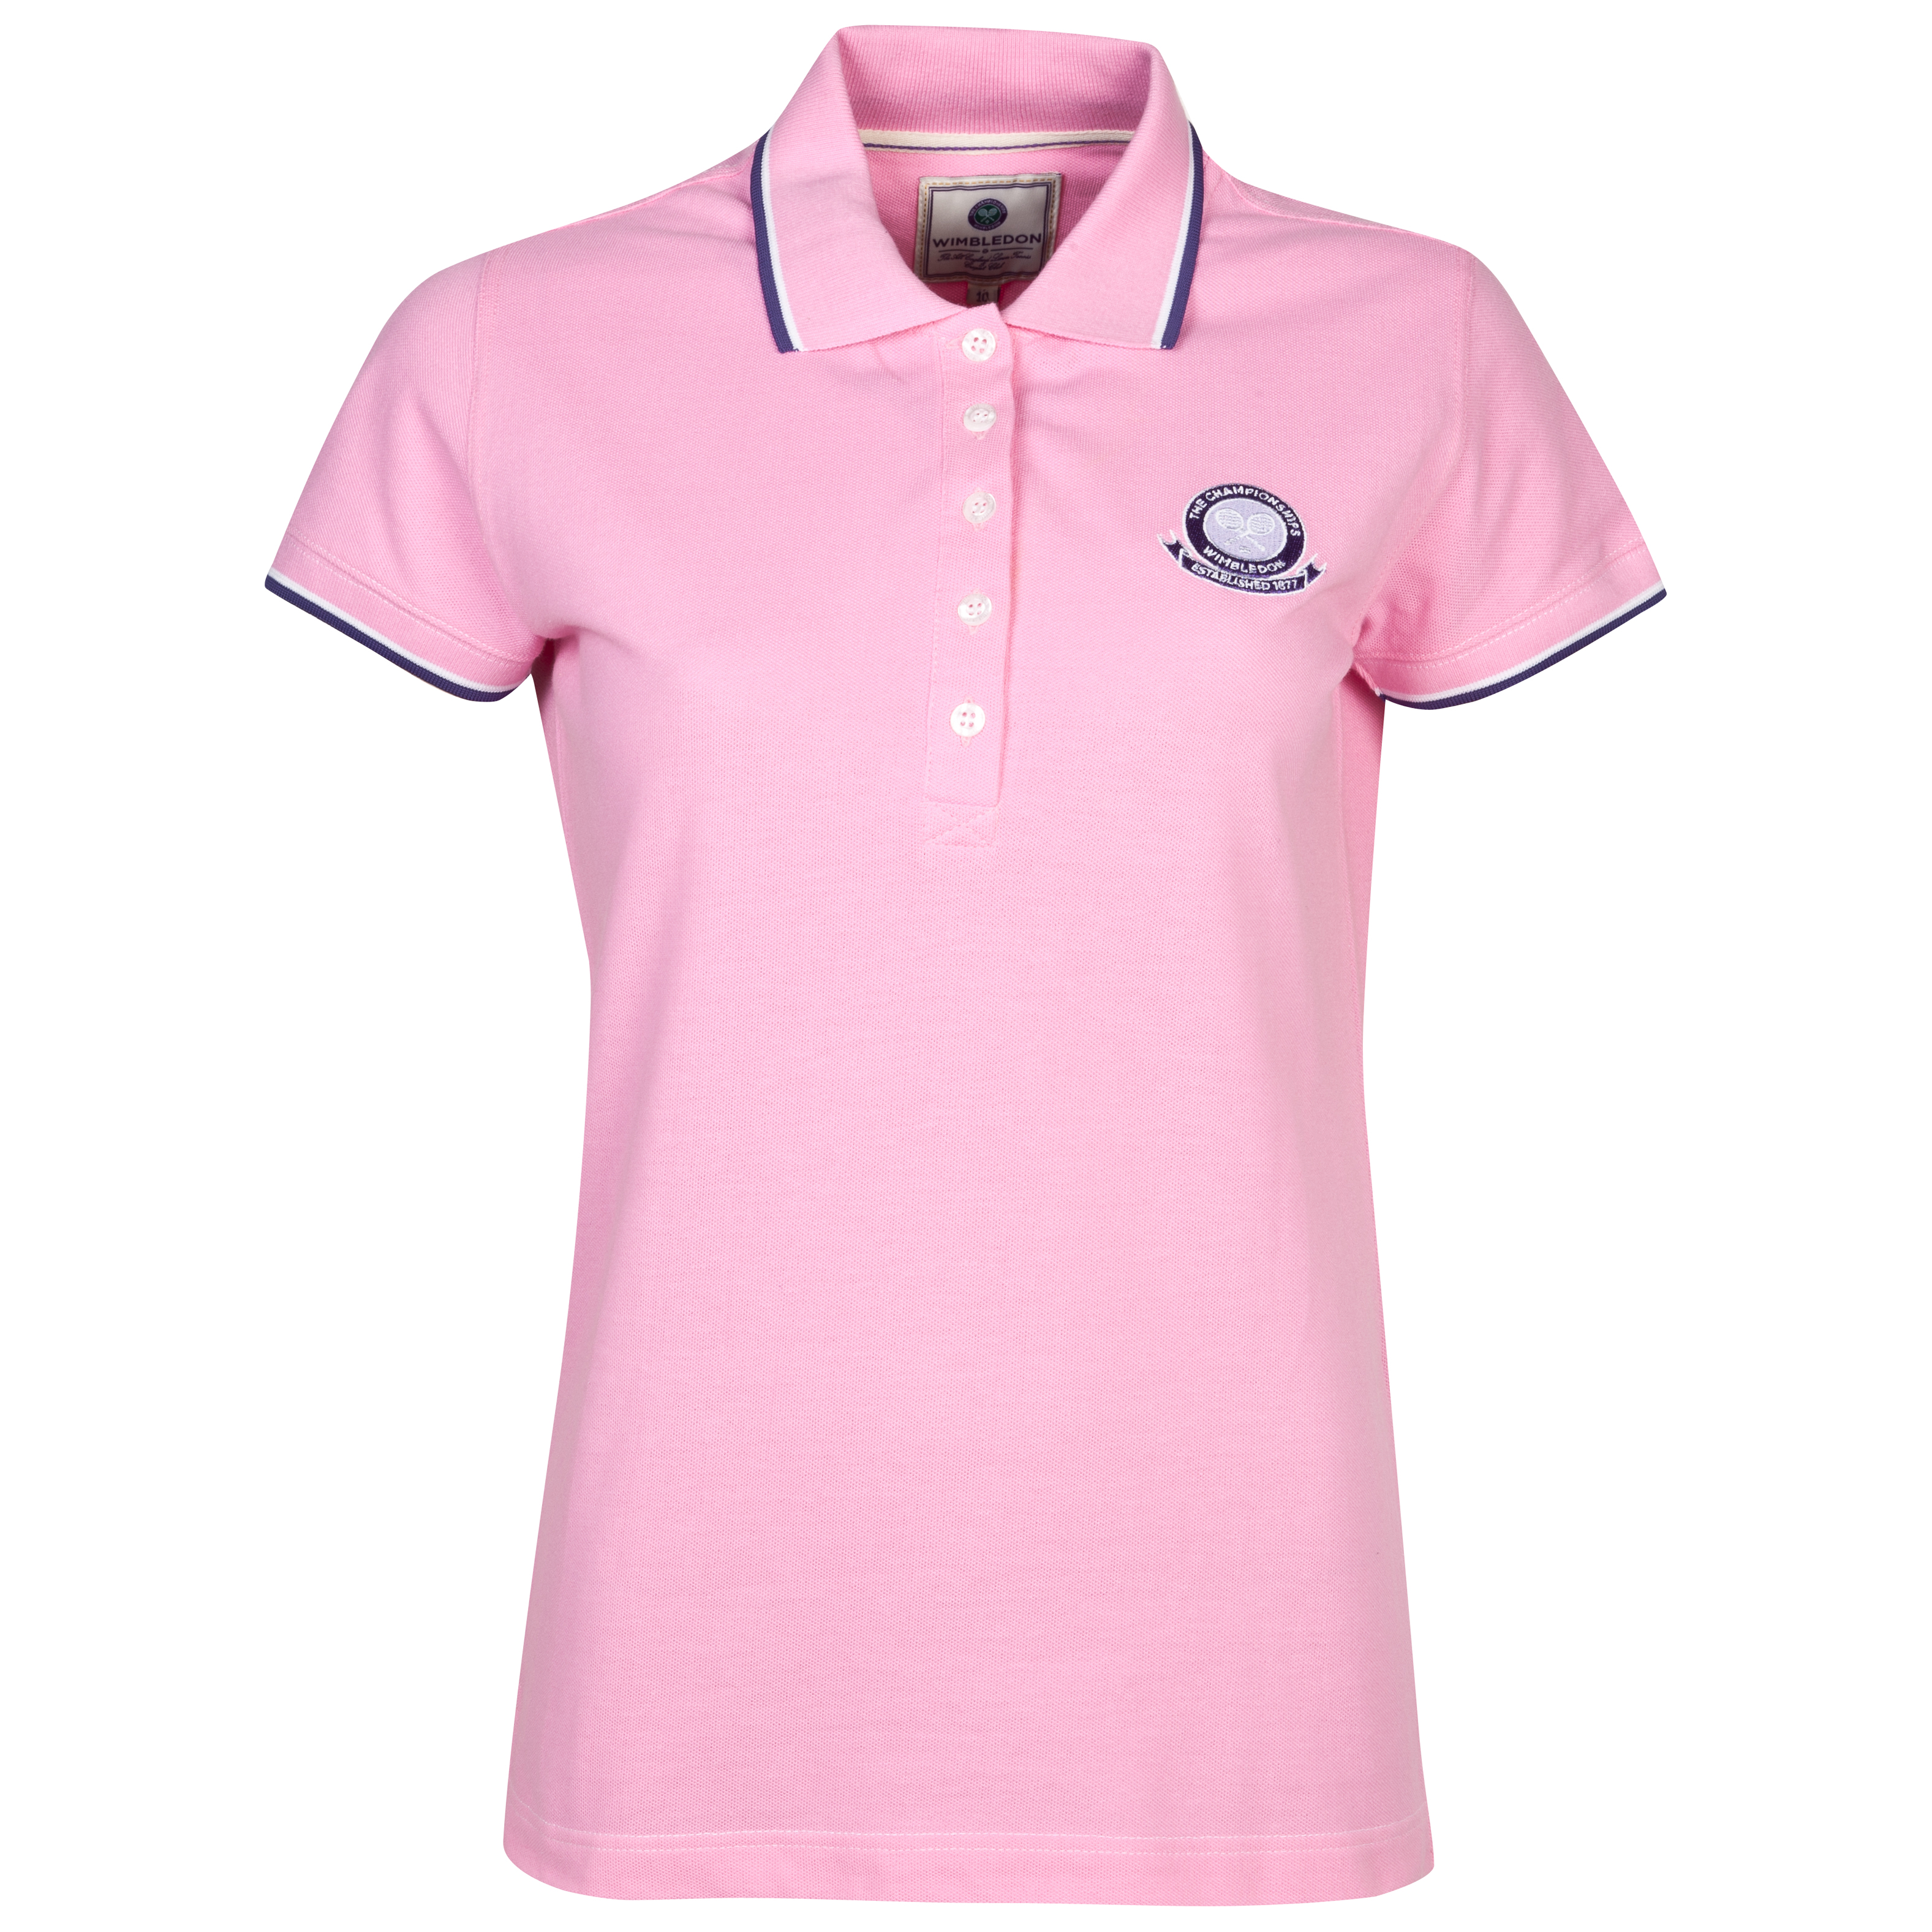 Wimbledon Pique Polo Shirt - Ladies - Light Pink